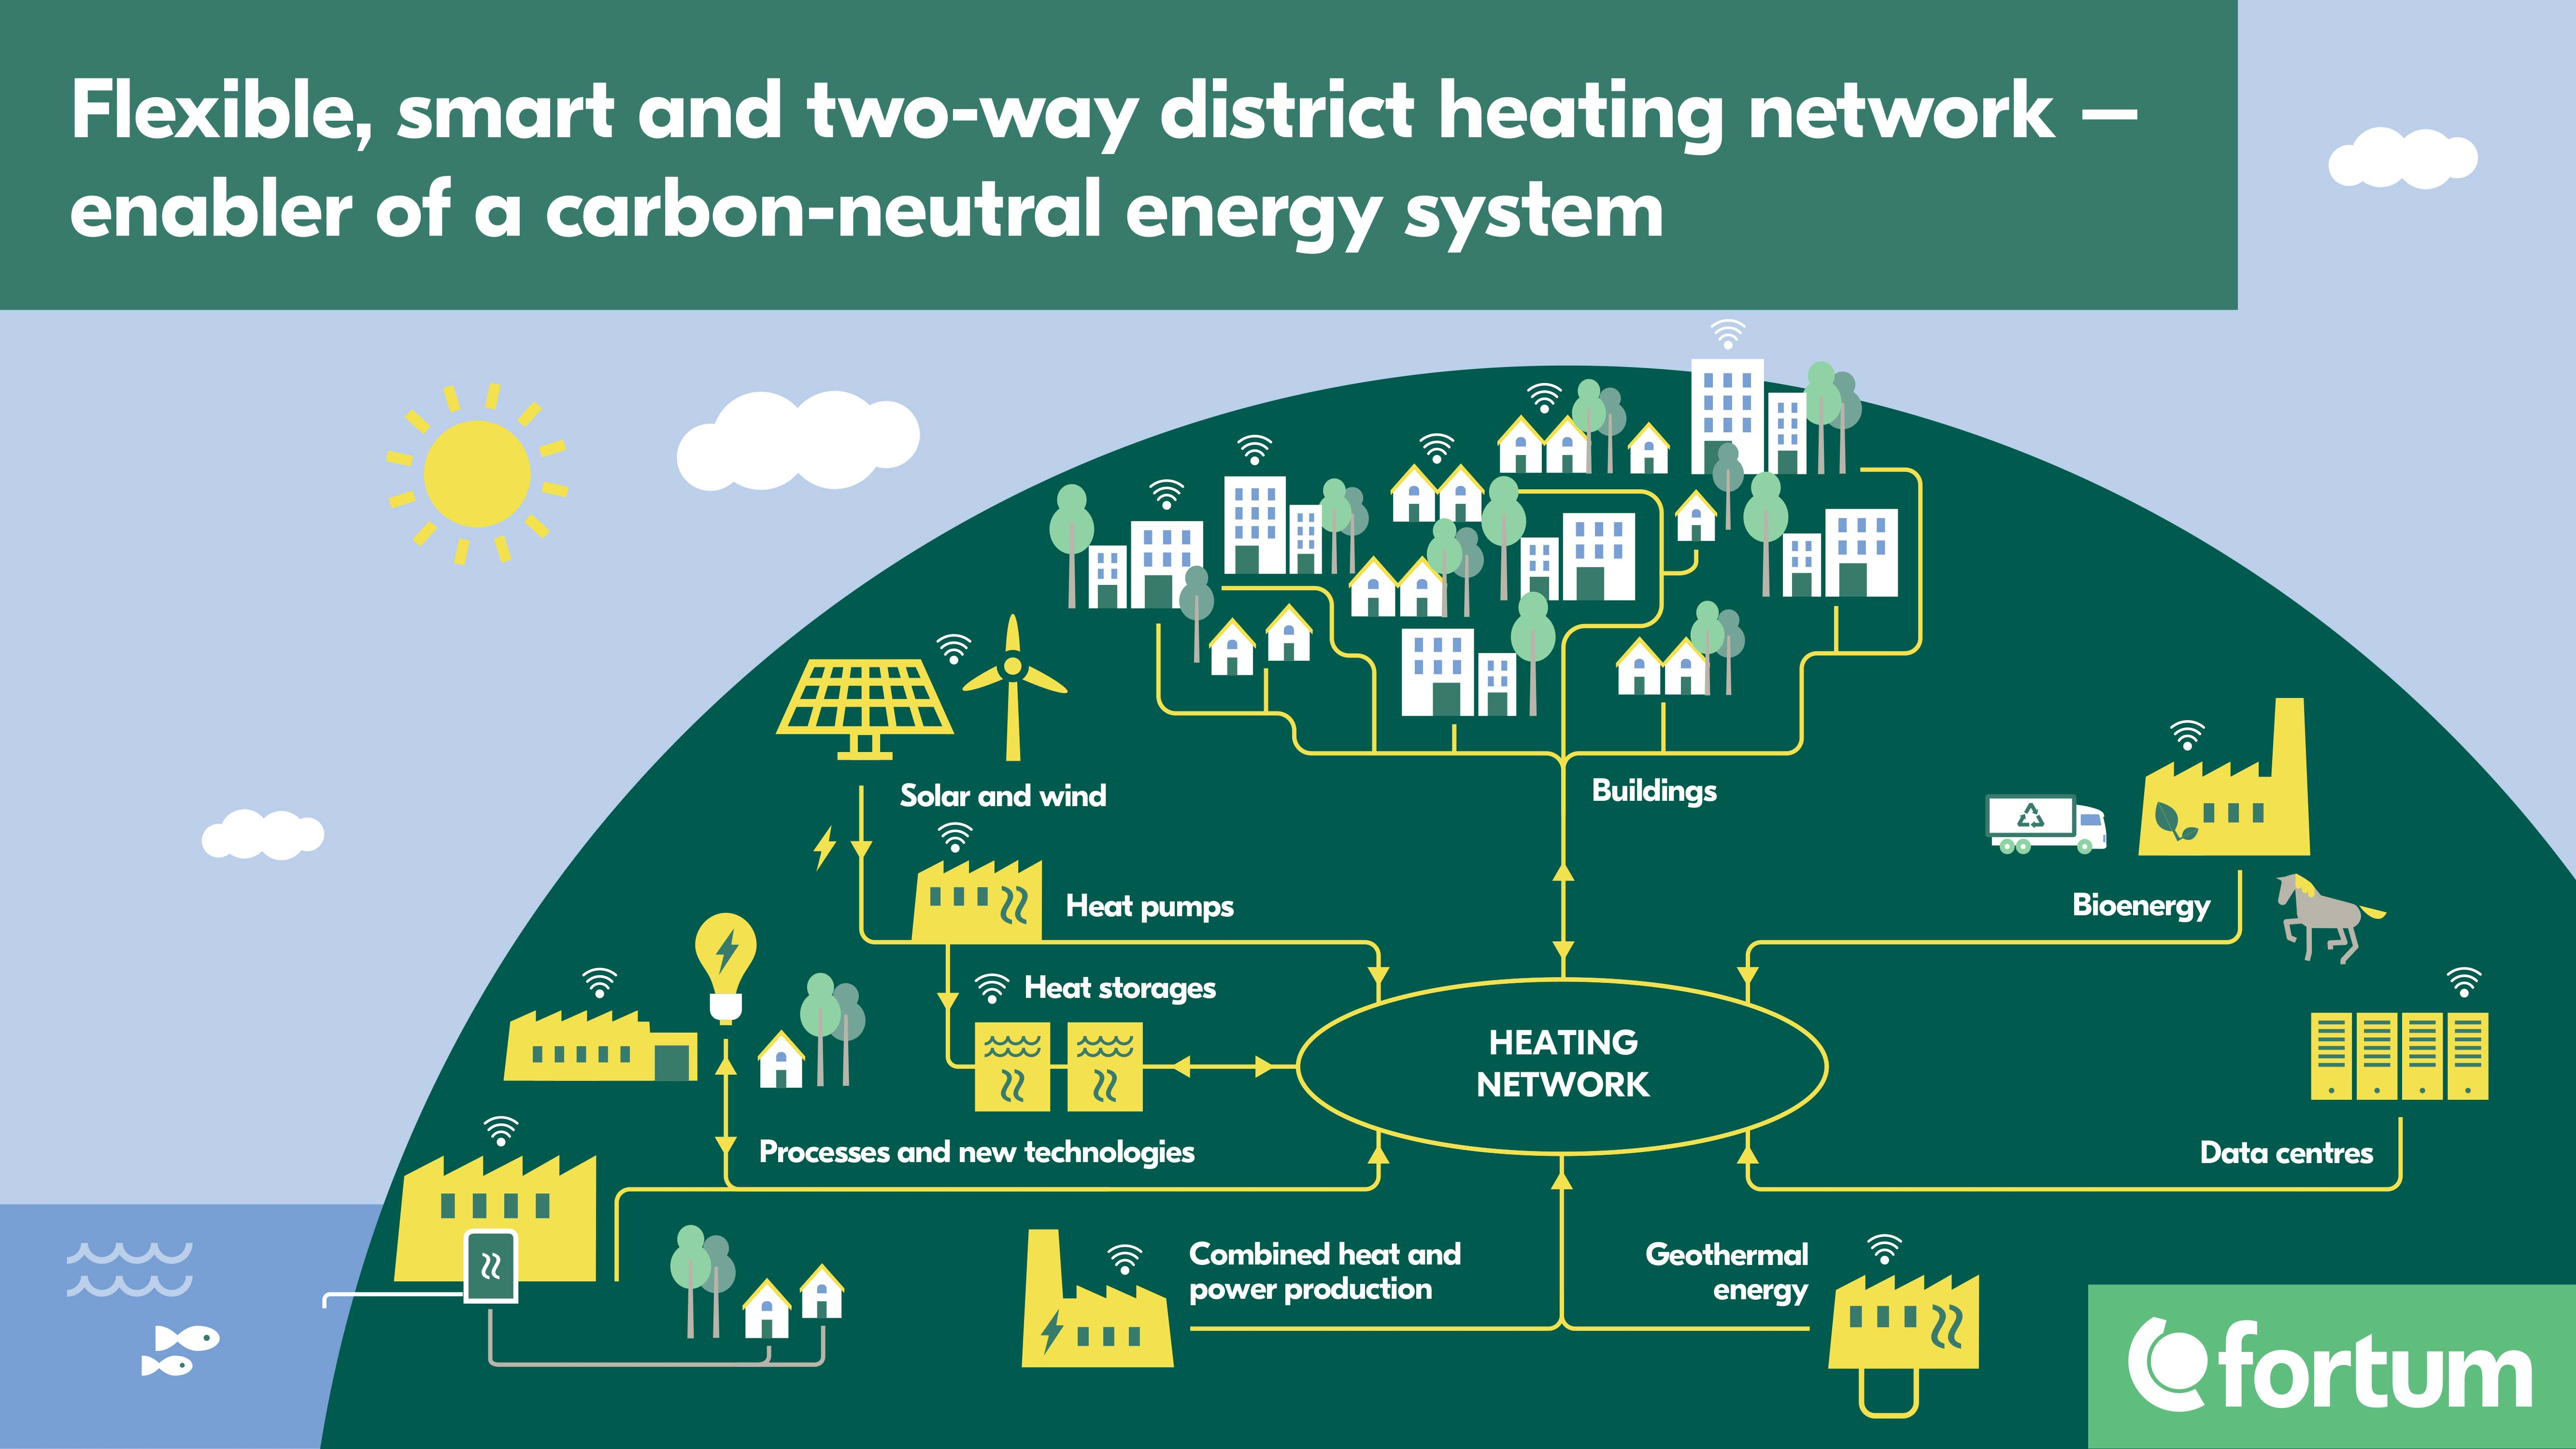 Distric heating network illustration